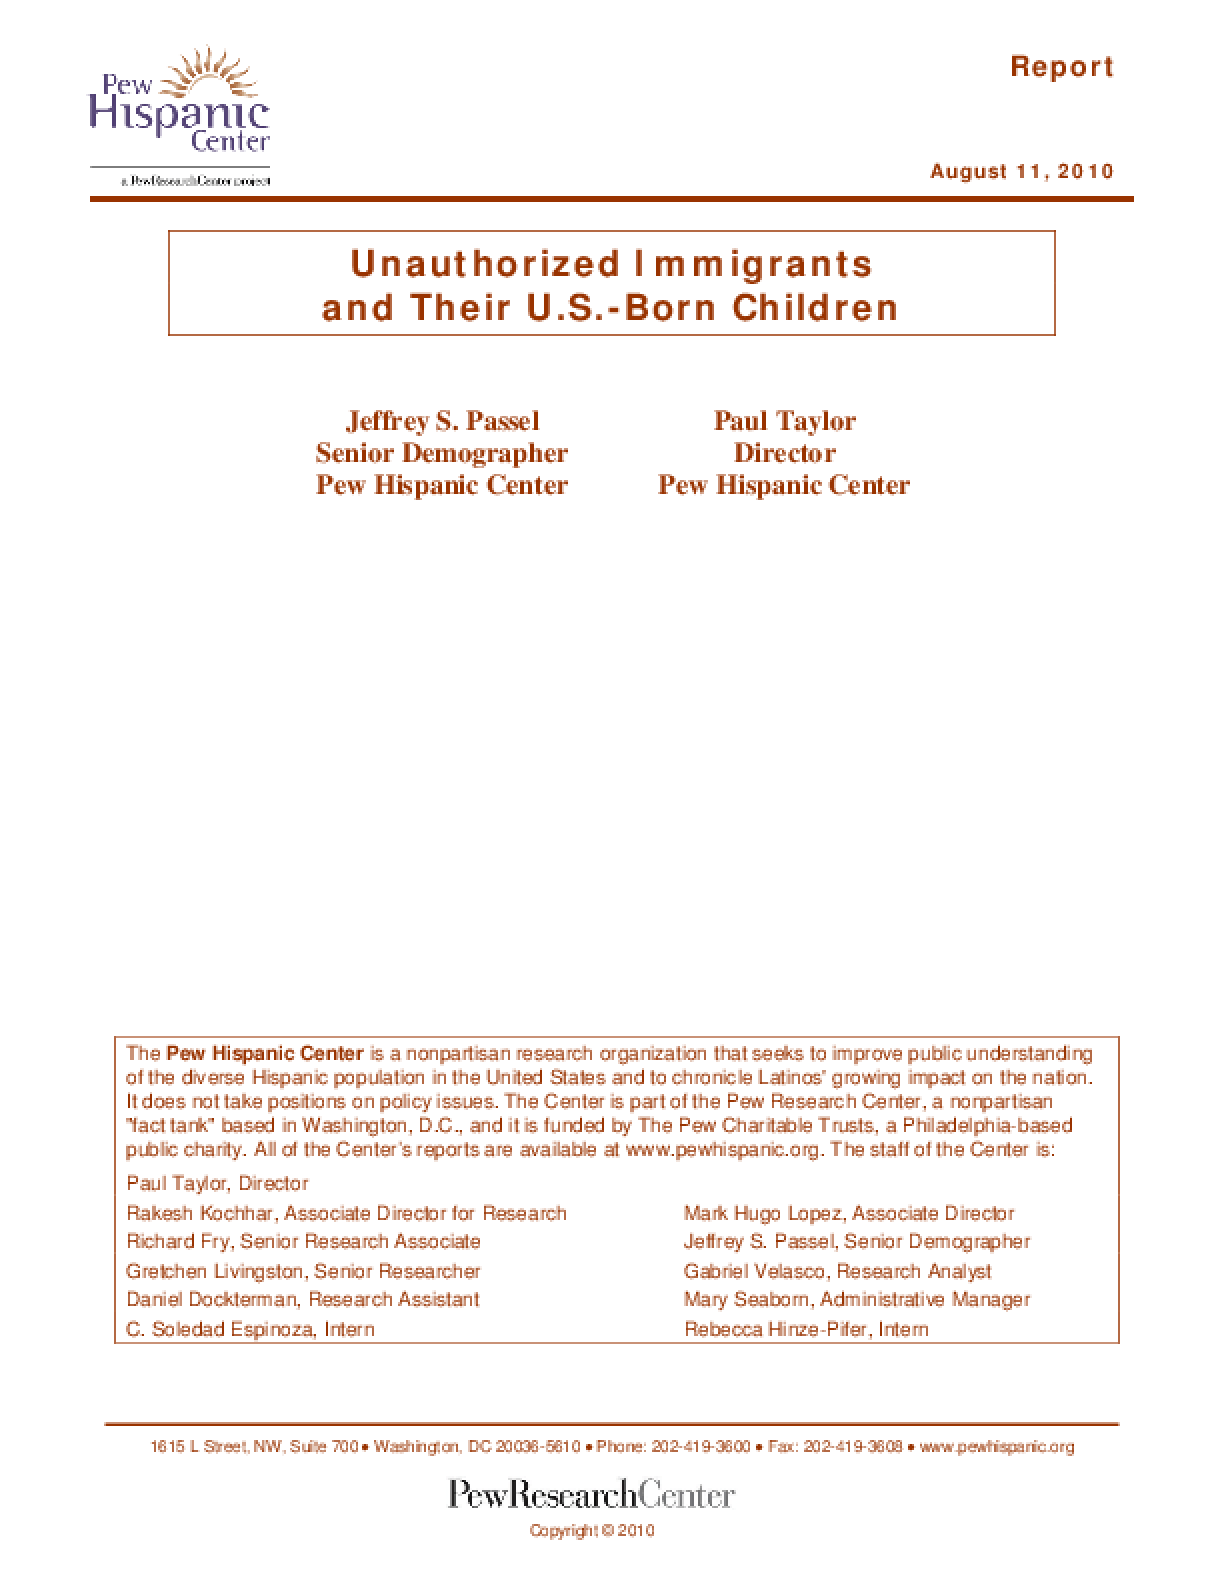 Unauthorized Immigrants and Their U.S.-Born Children